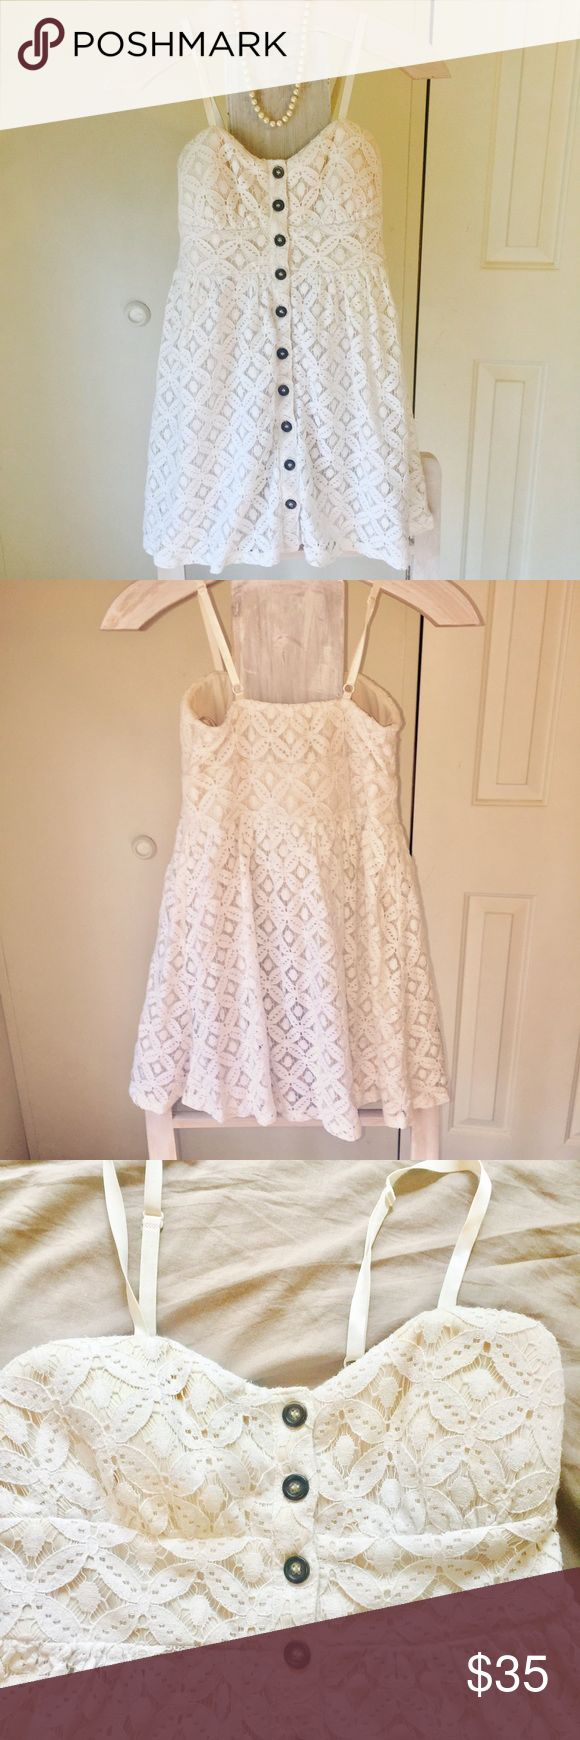 💄Elegant boutique summer dress💋 So elegant! Dress it up or down. Great condition!! It is an ivory color dress with built in slip, and a detailed lace overlay. It has adjustable straps and has dark brown buttons from top to bottom. The chest area has a little padding. Adorable!! Dresses